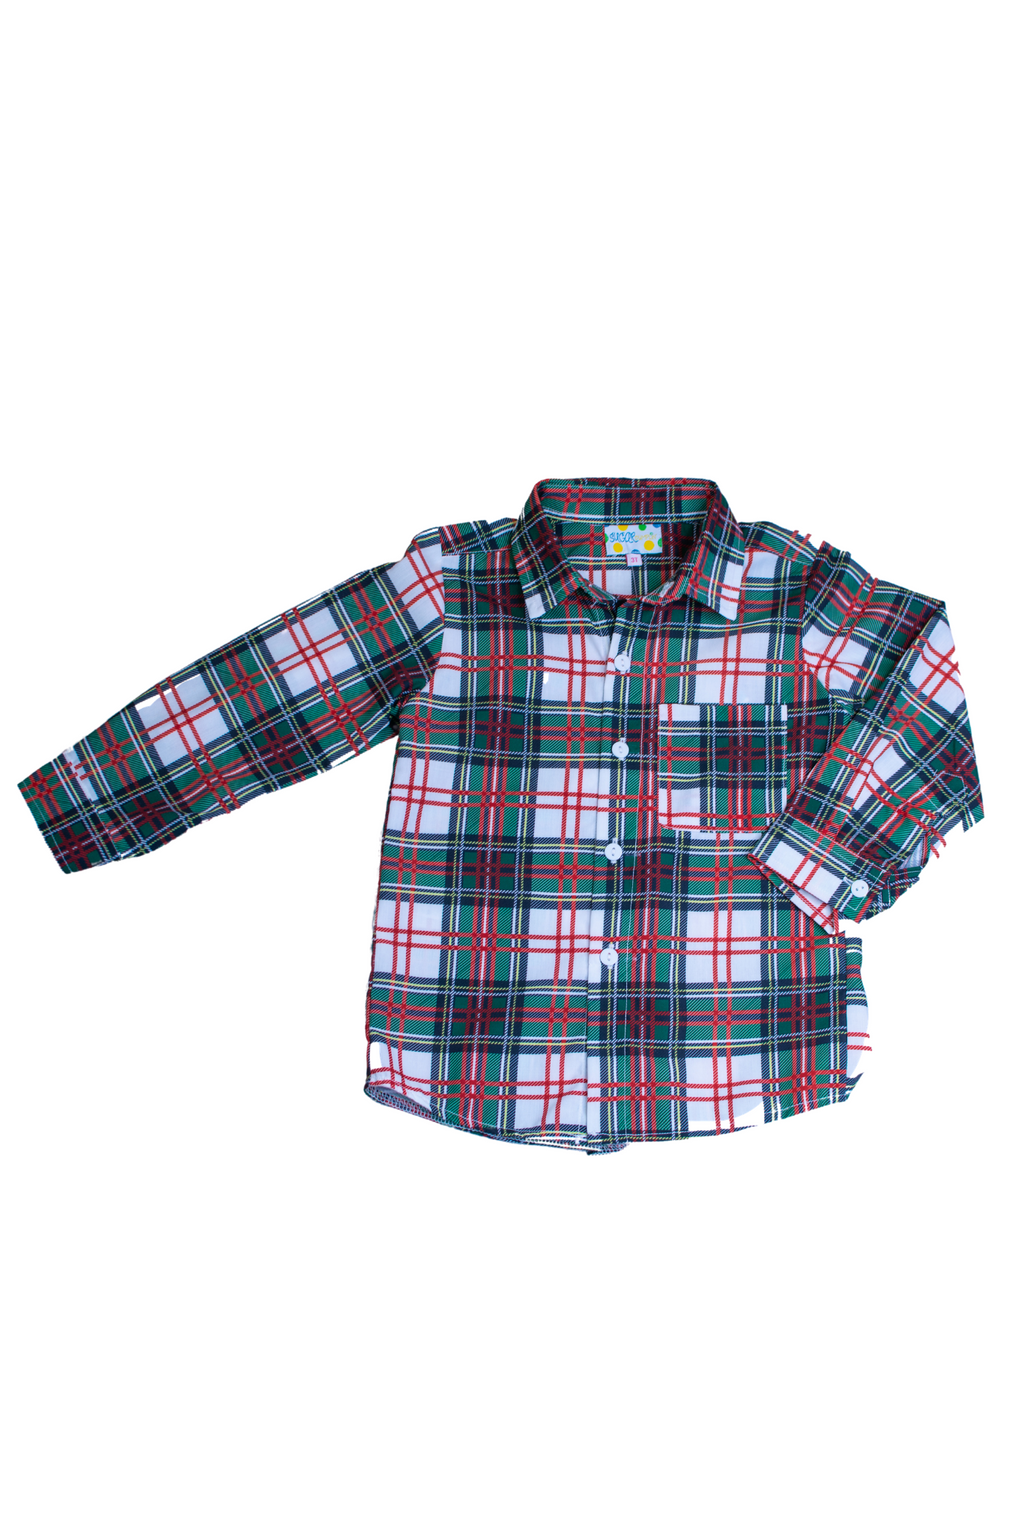 Boys Christmas Plaid Shirt Only